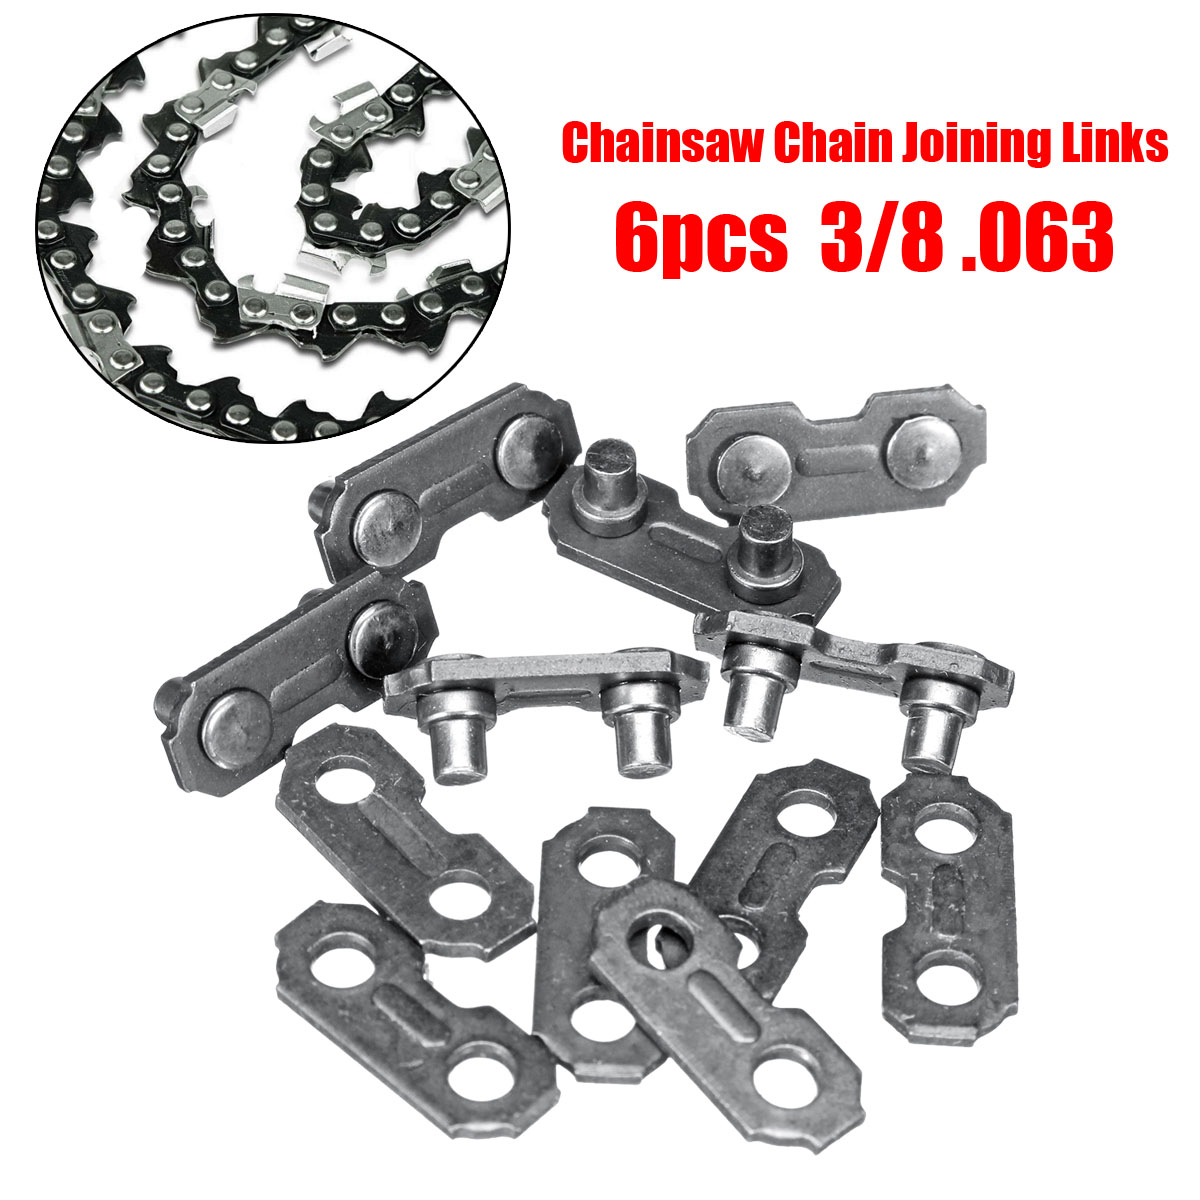 6Pcs Stainless Steel Chainsaw Chain Joiner Link Chain Joint For Joinning 3/8 .063 Chains for Chainsaw Parts 16 size chainsaw chains 3 8 063 1 6mm 60drive link quickly cut wood for stihl 039